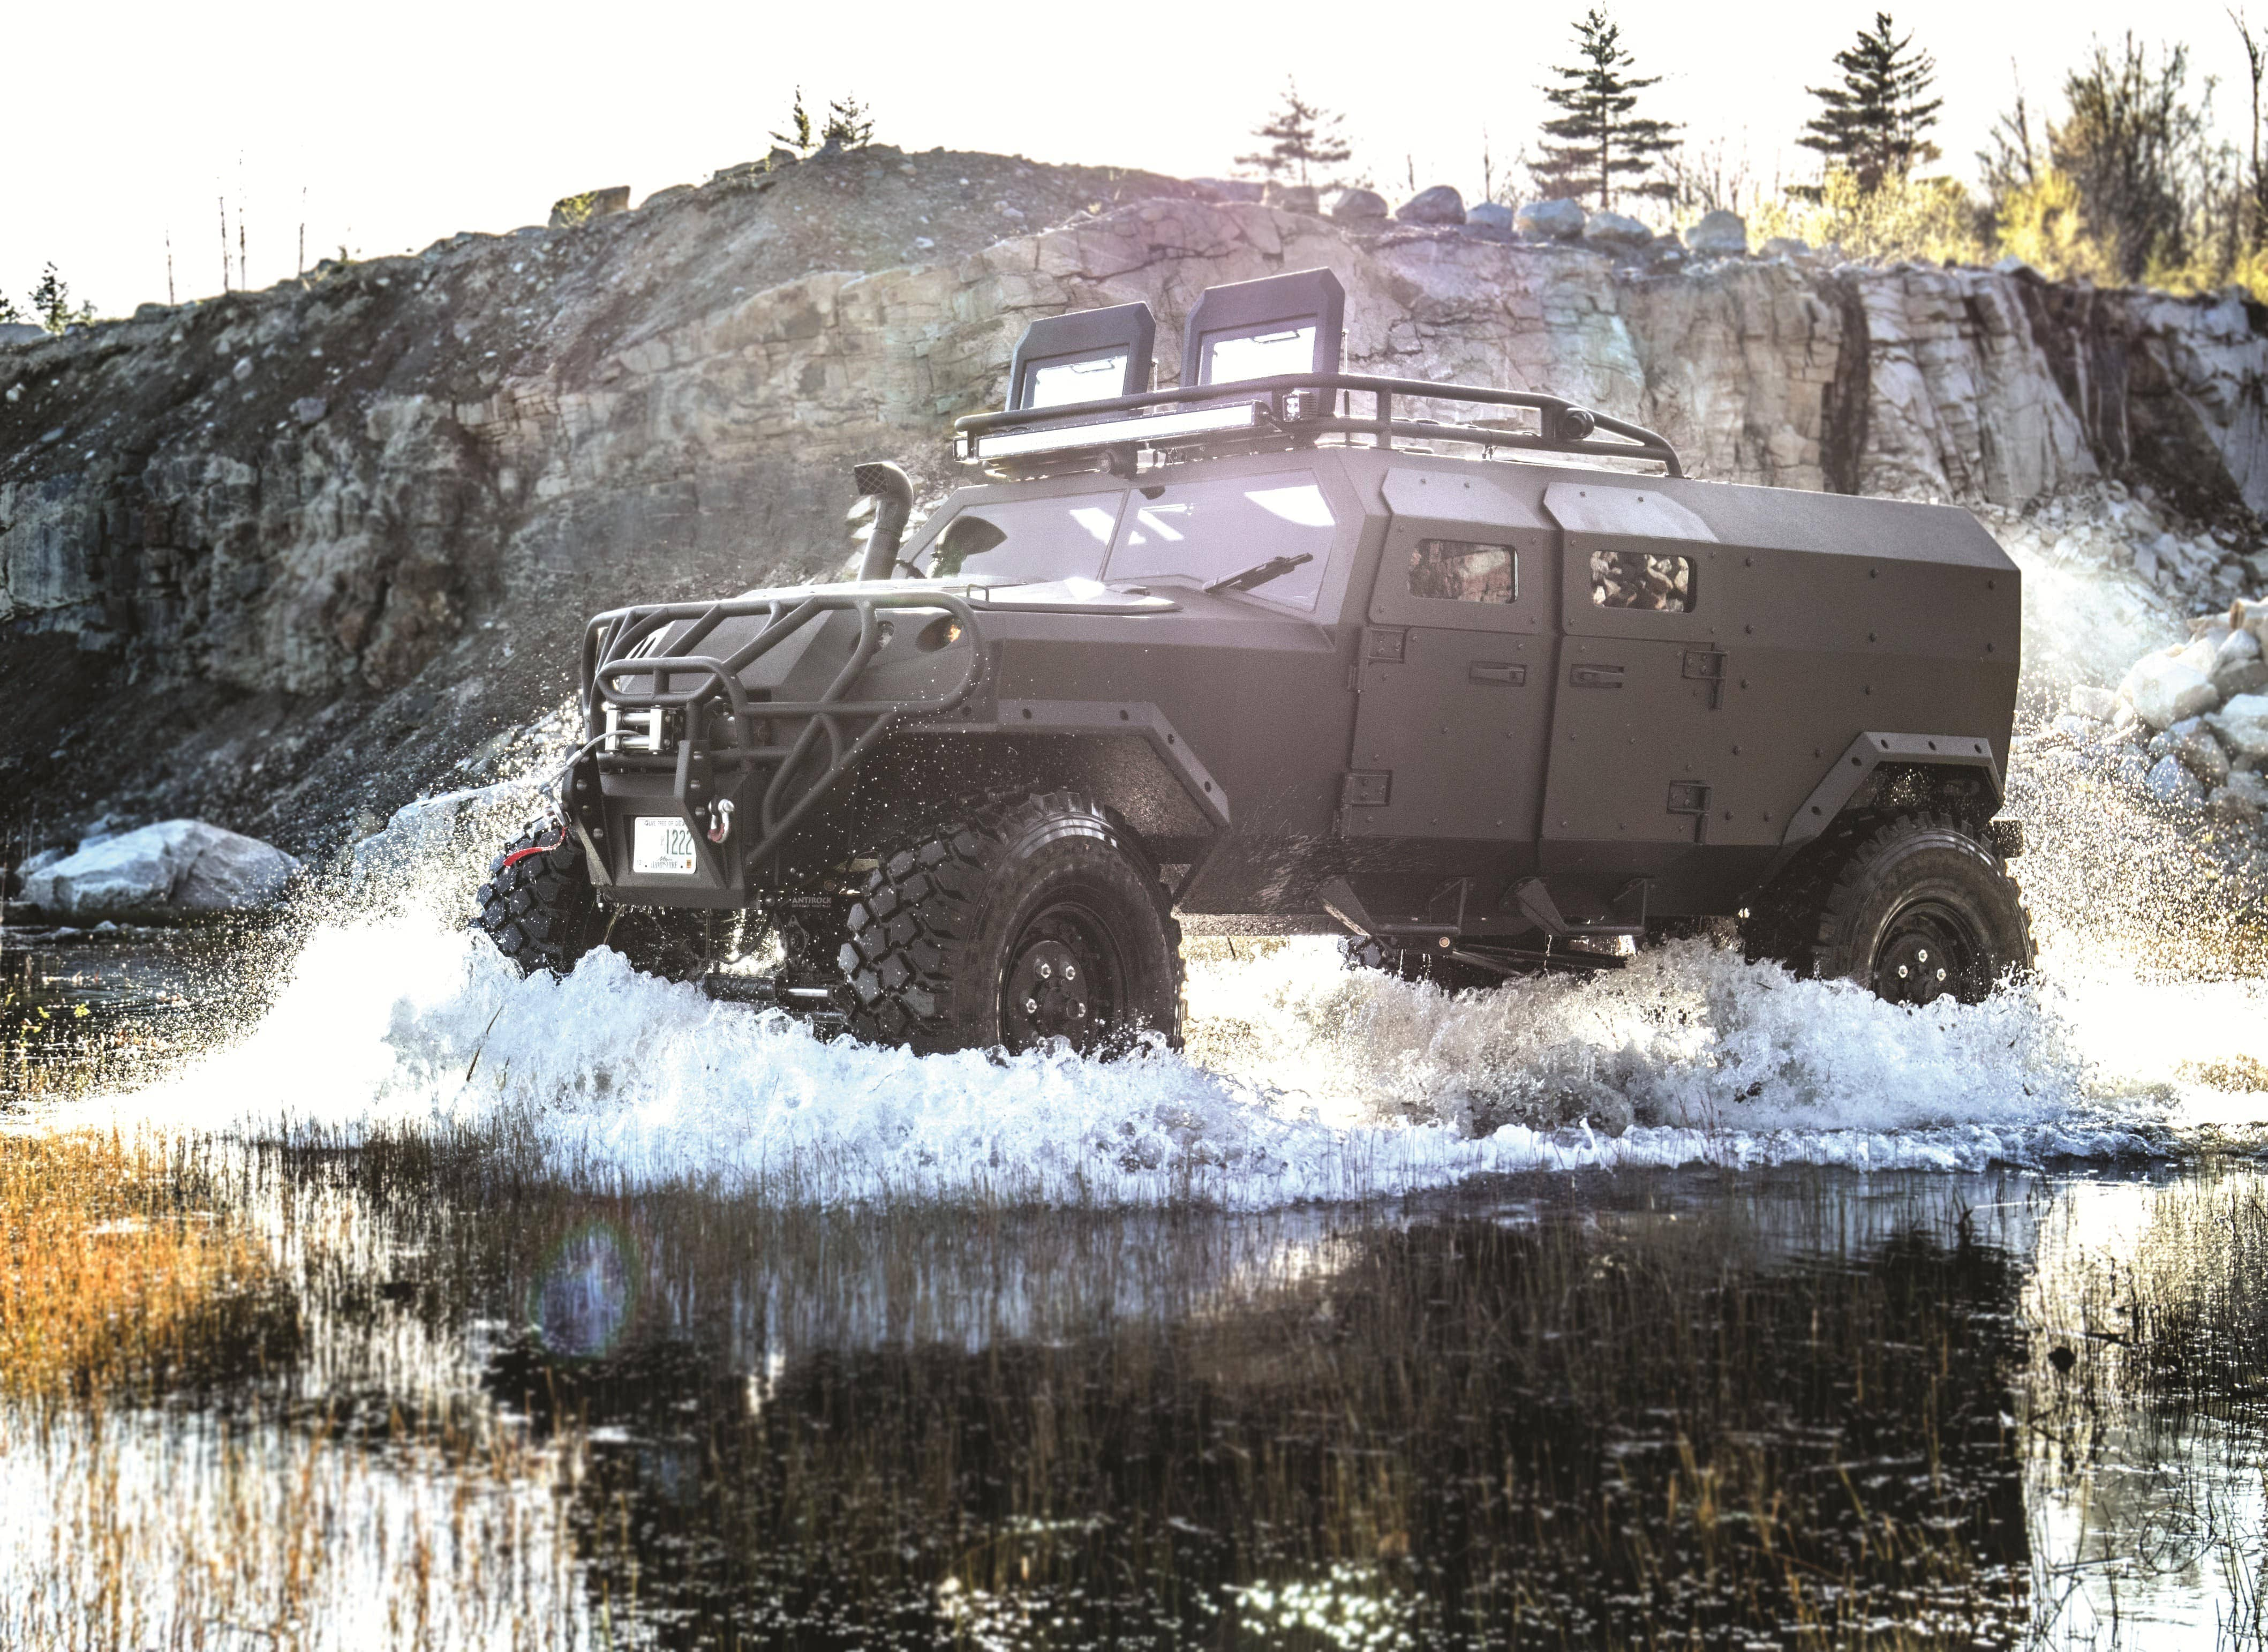 The PSV will ford water obstacles up to 6 feet deep.